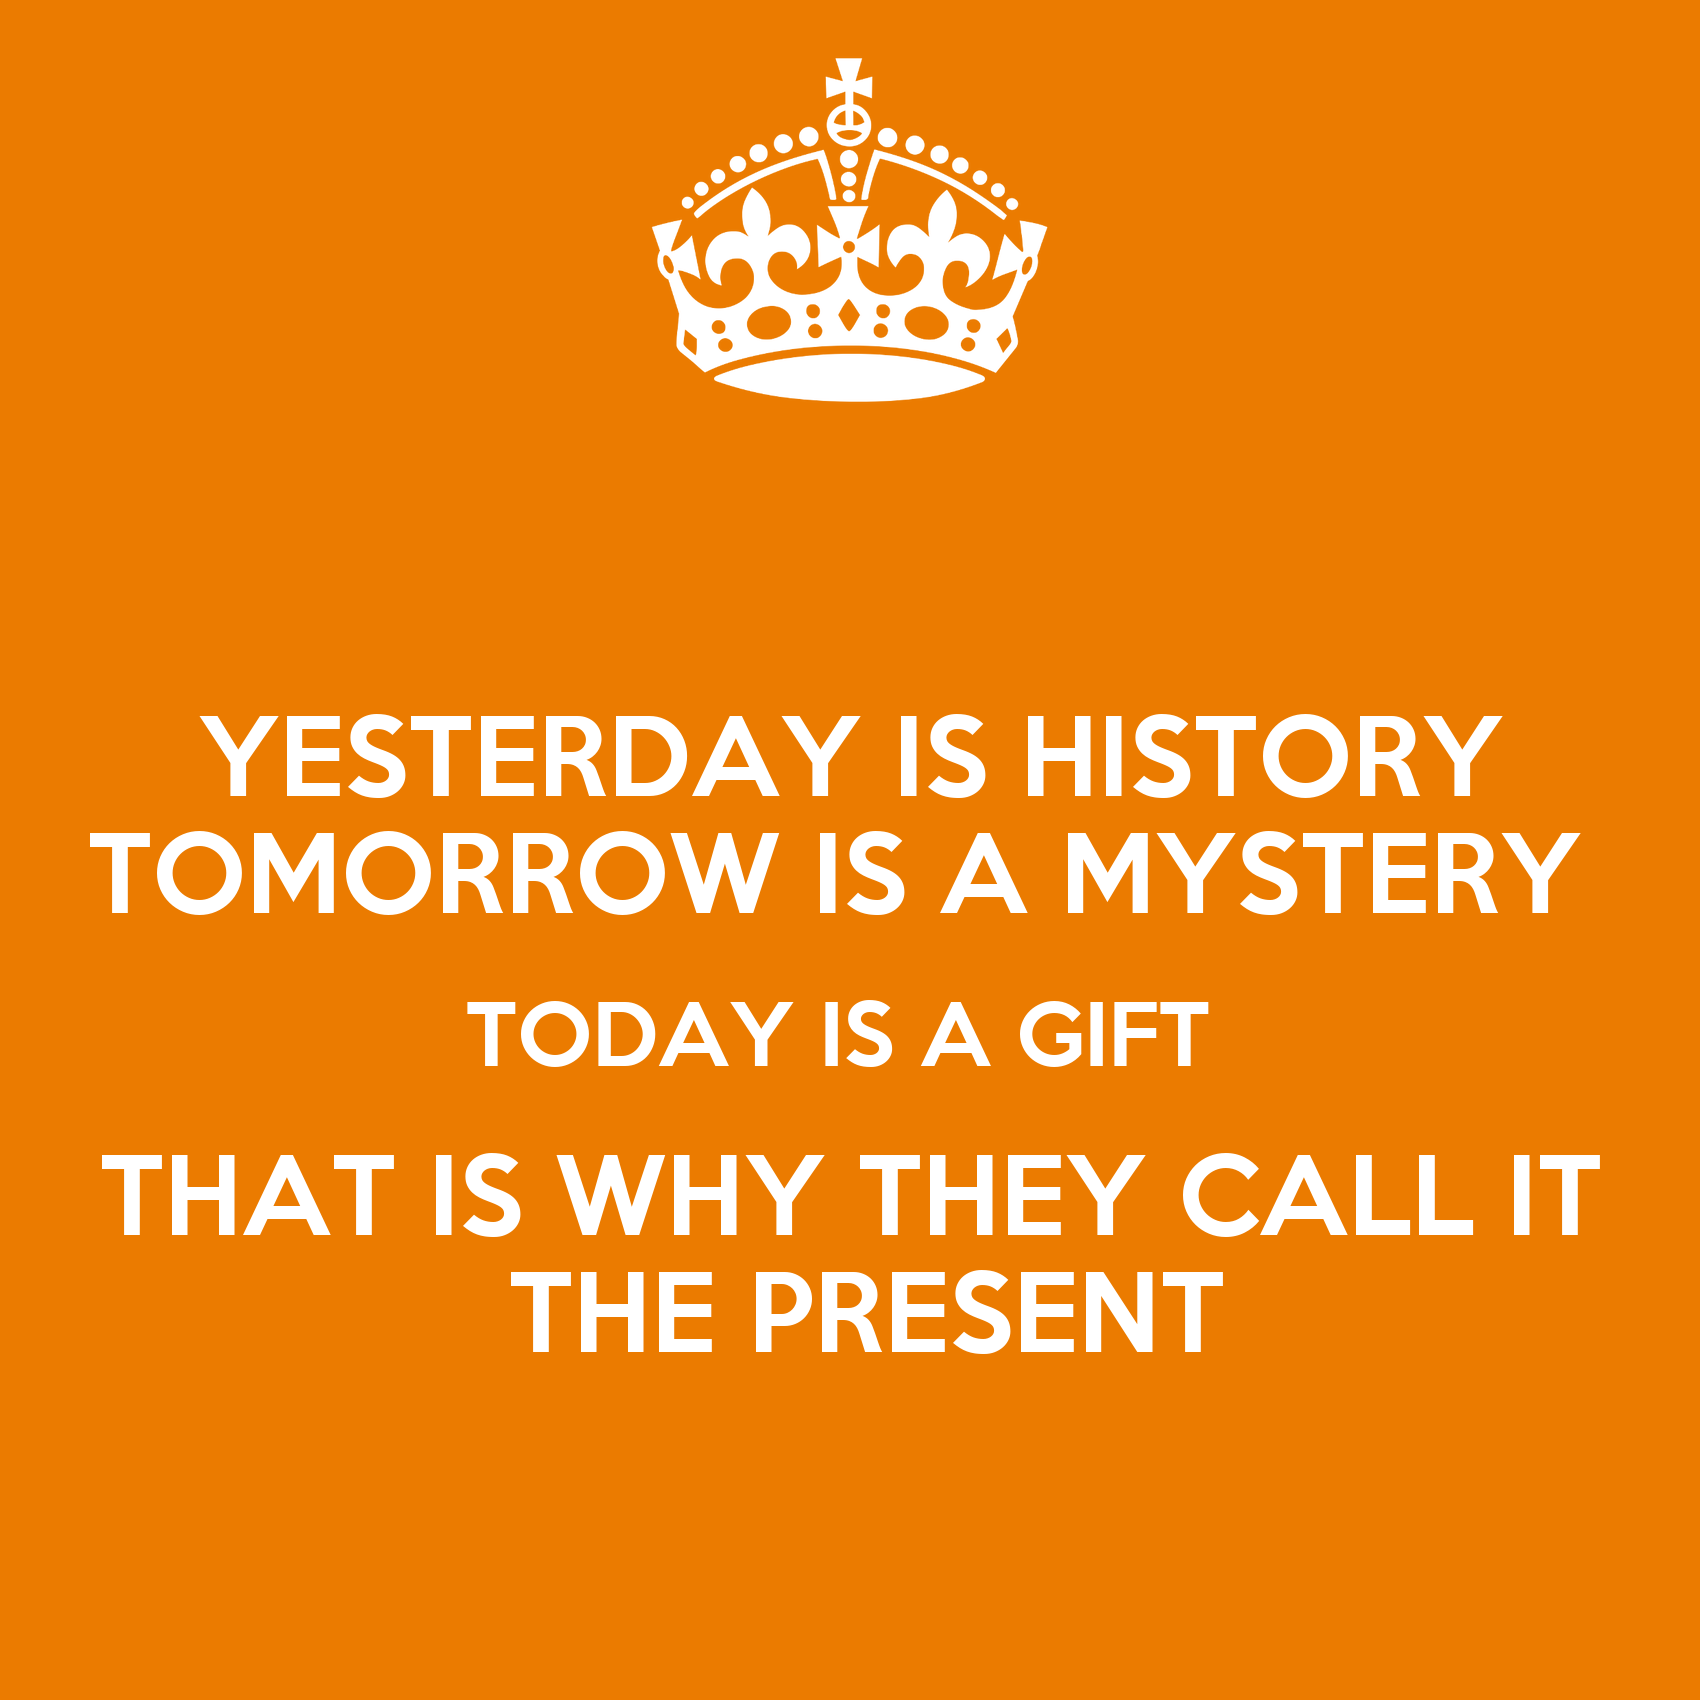 yesterday is history tomorrow is a mystery Kung fu panda is a 2008 animated film about an obese and clumsy panda who finds himself designated the prophesied  yesterday is history, tomorrow is a mystery, .